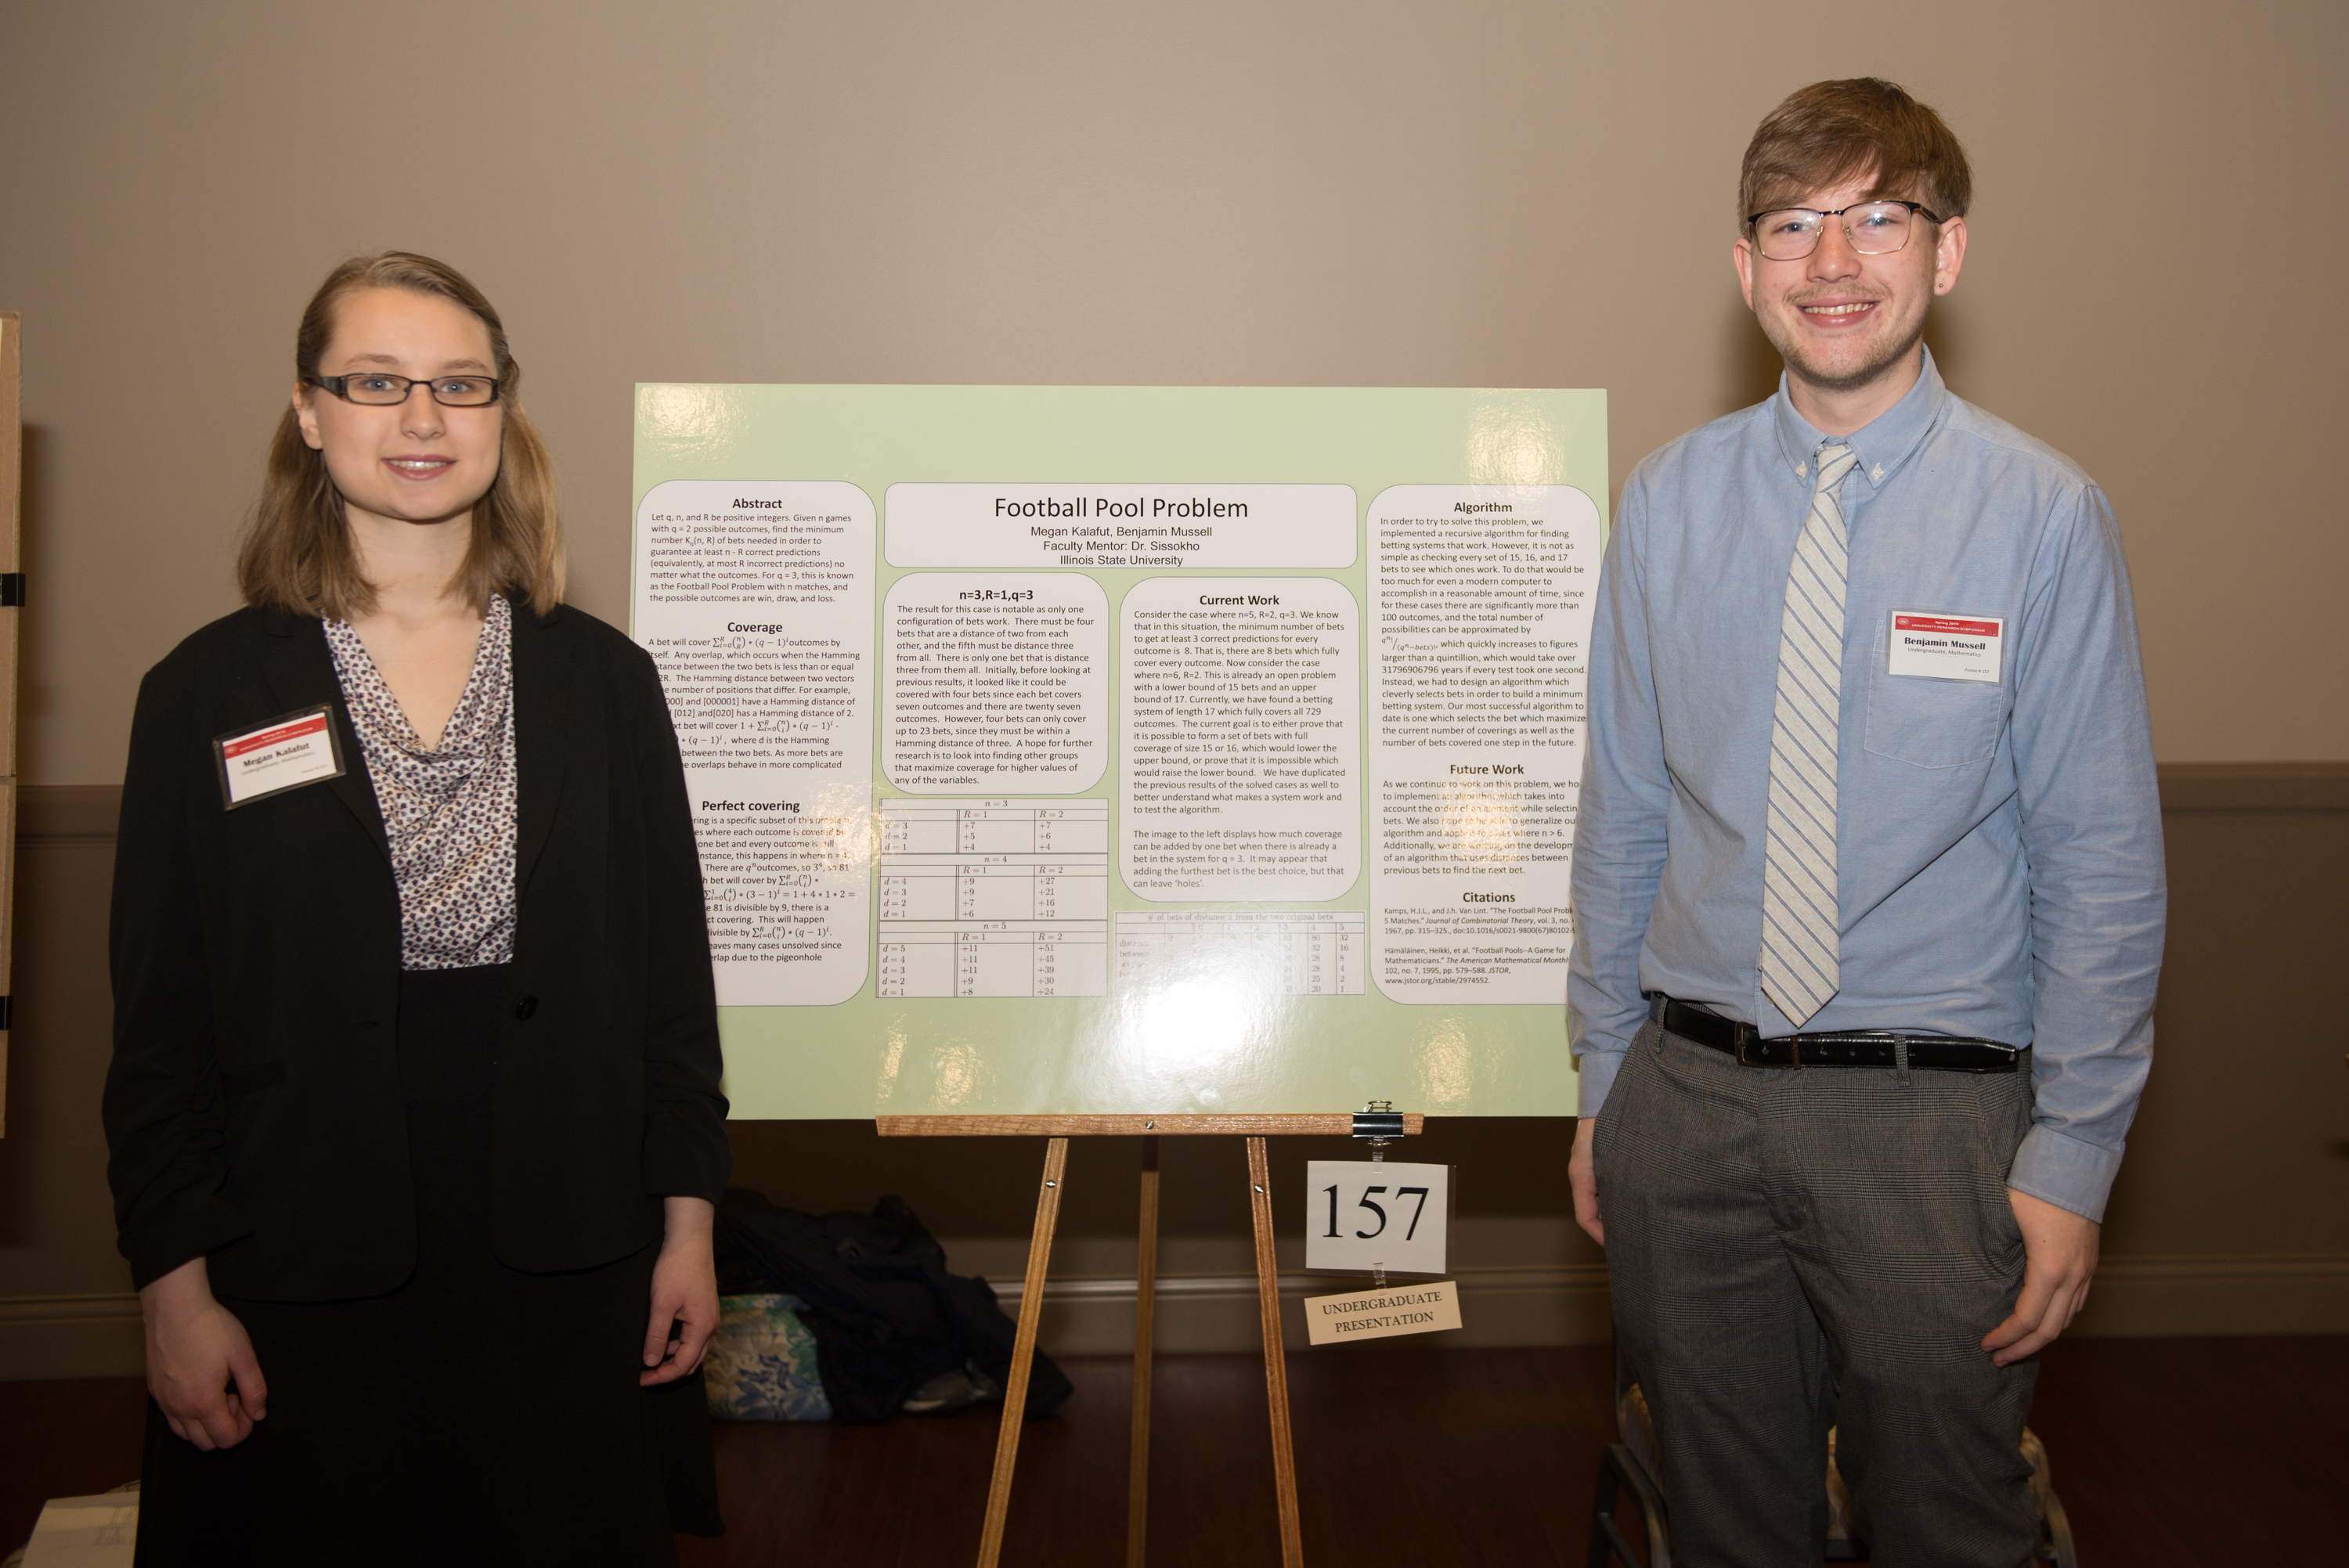 Megan Kalafut and Benjamin Mussell at the Research Symposium